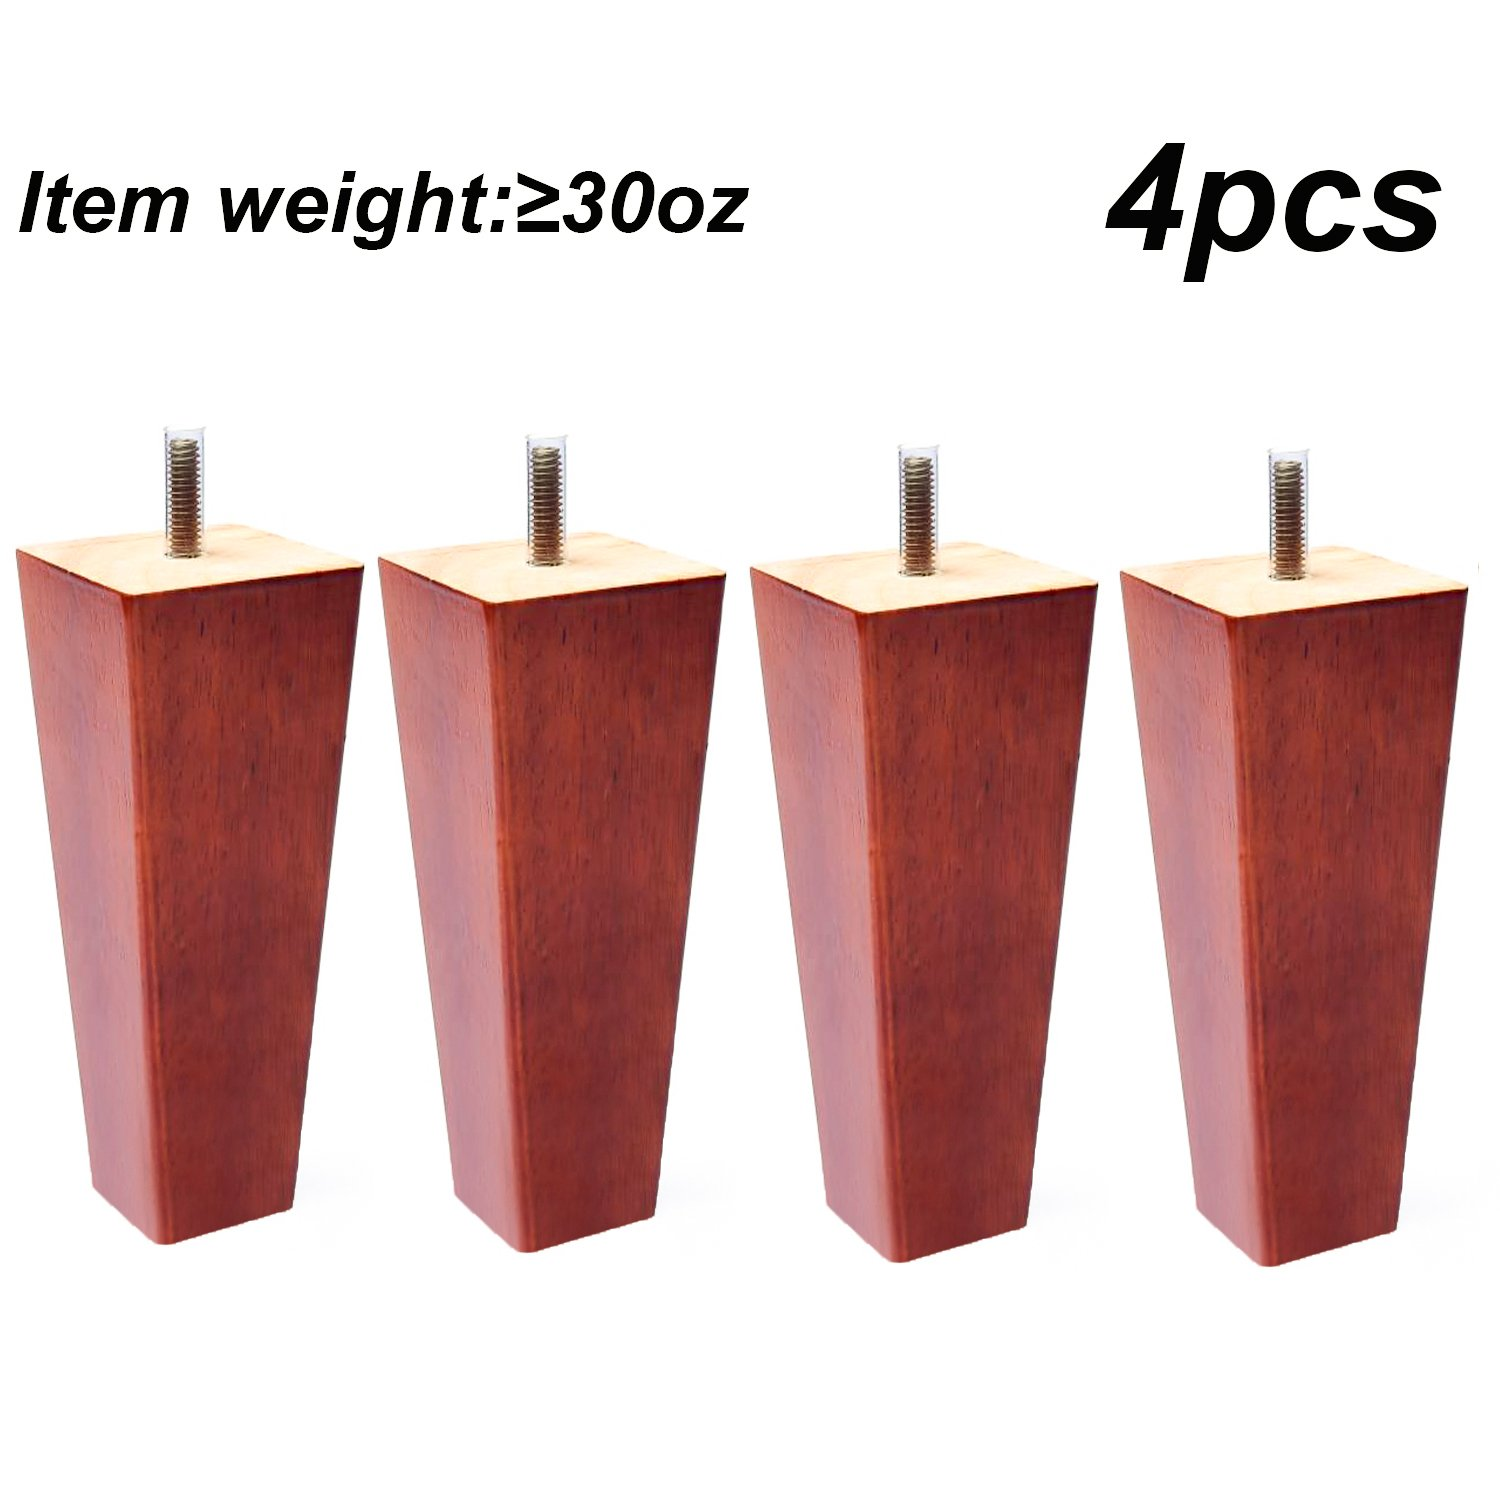 Sofa Legs Set of 4,Tapered 5 Inch Solid Wood Furniture Sofa/Chair/Couch/Loveseat Replacement legs Sweet Melodi SOFAL-009